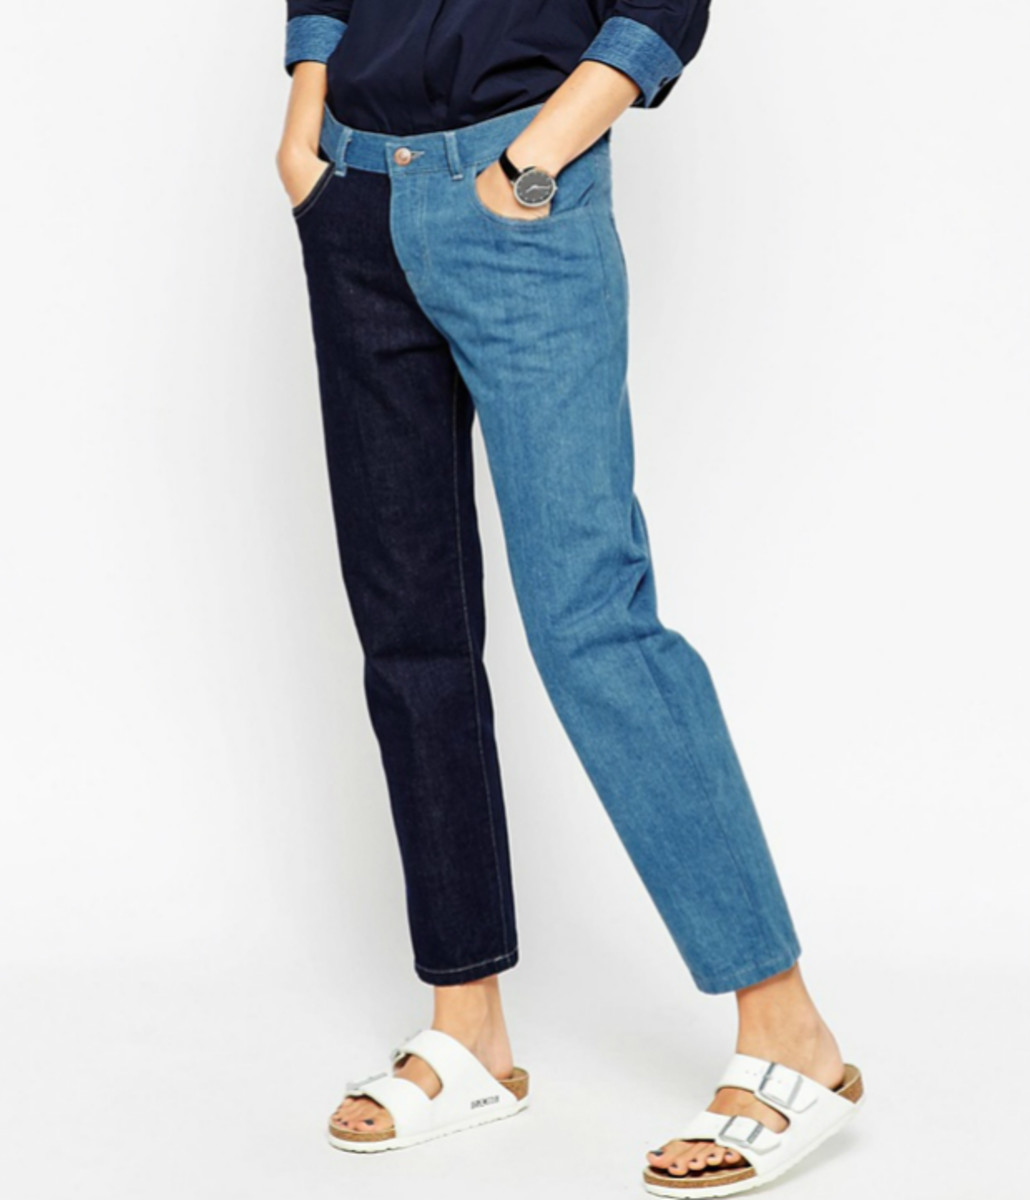 Asos White Double Panel Mom Jeans, $99, available at Asos.